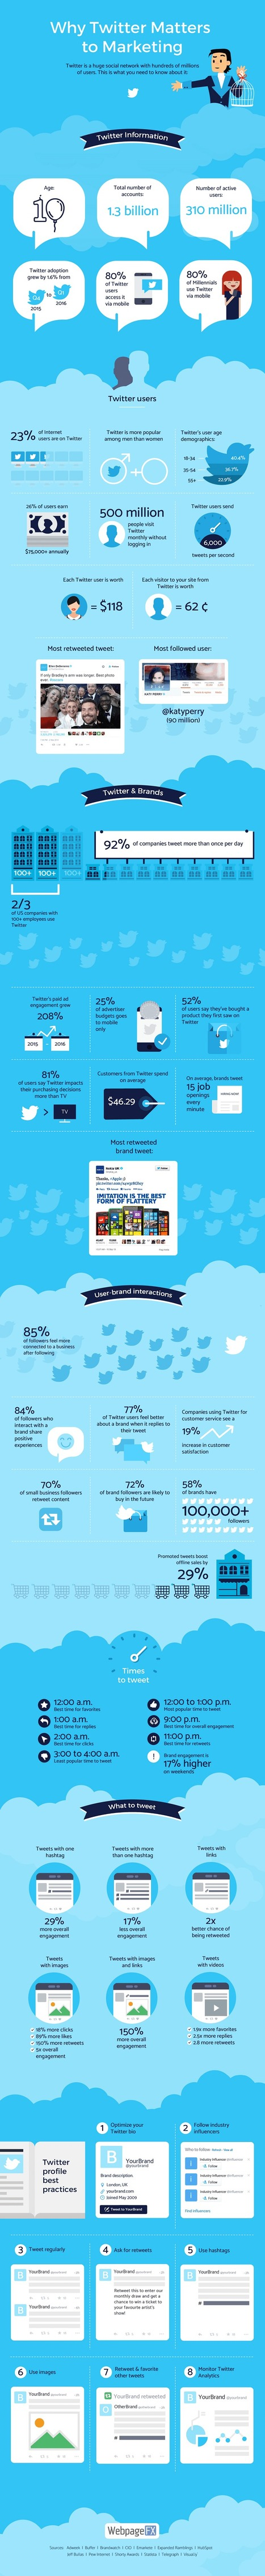 Why Twitter Matters to Marketing #Infographic | Mastering Facebook, Google+, Twitter | Scoop.it